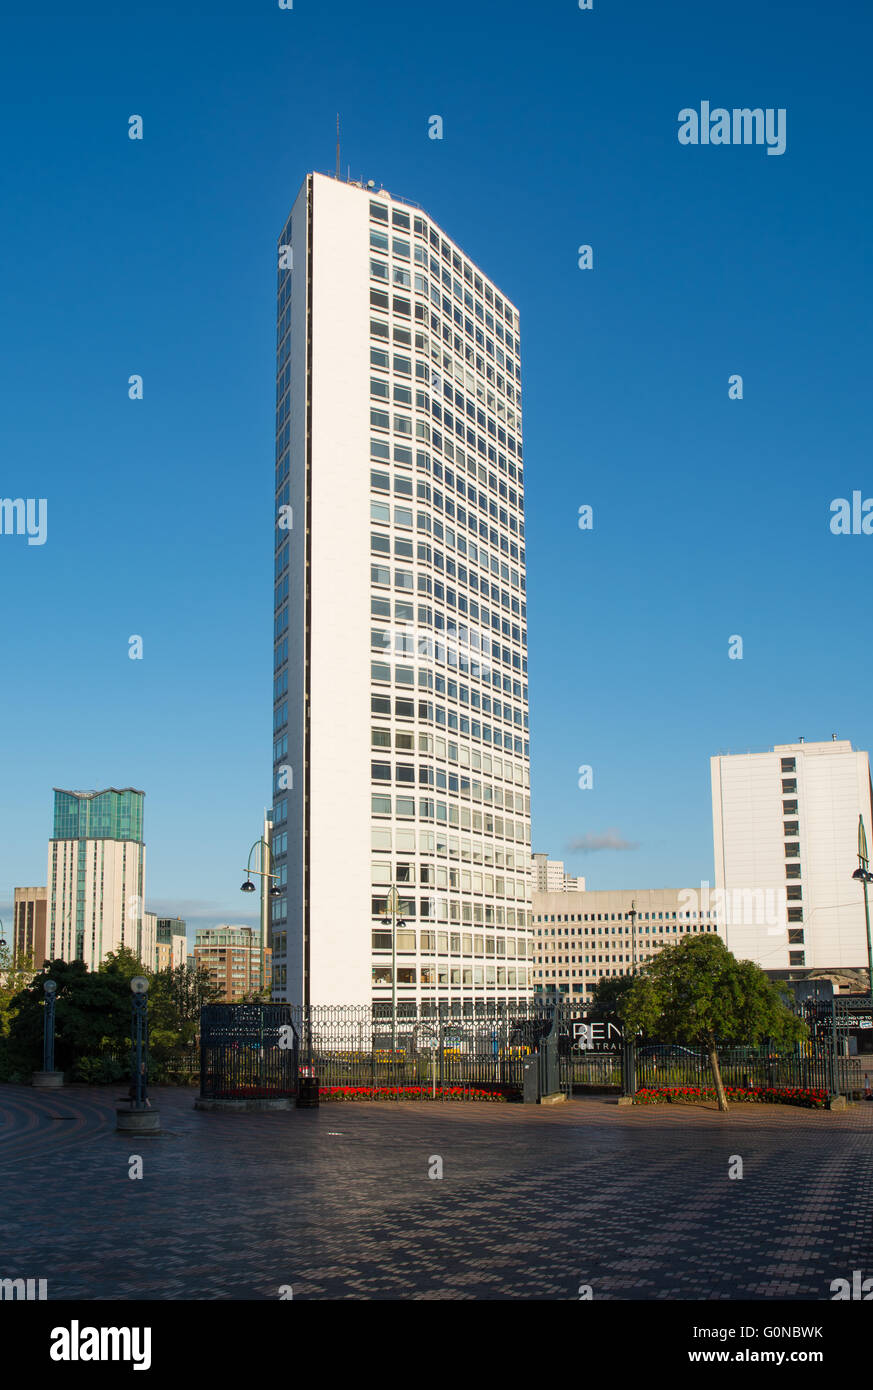 tall and narrow office block, known as the Alpha Tower, in the centre of Birmingham, UK - Stock Image